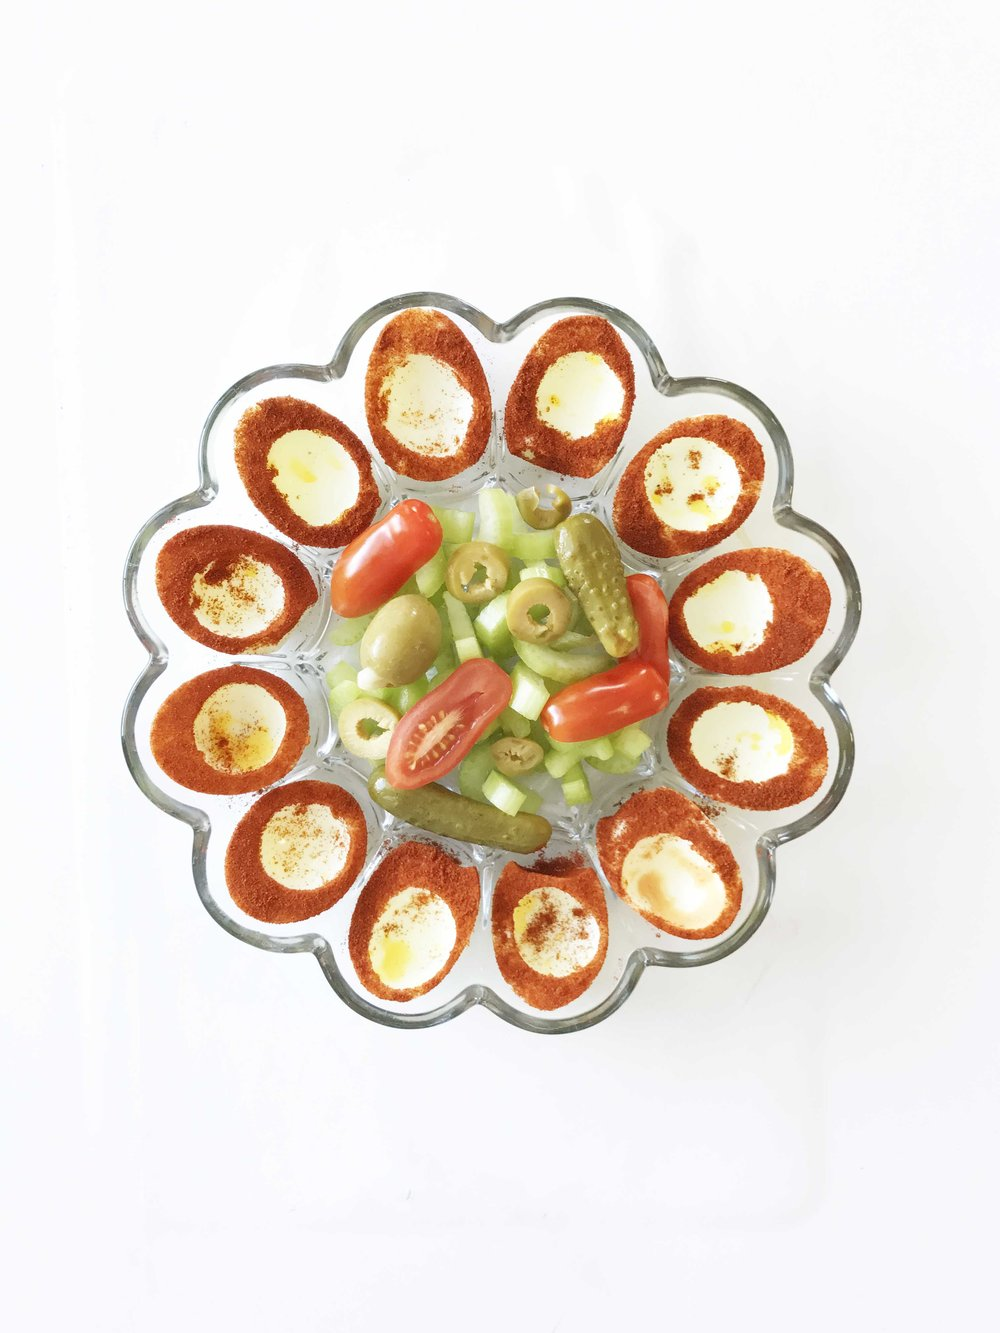 bloody-mary-deviled-eggs4.jpg